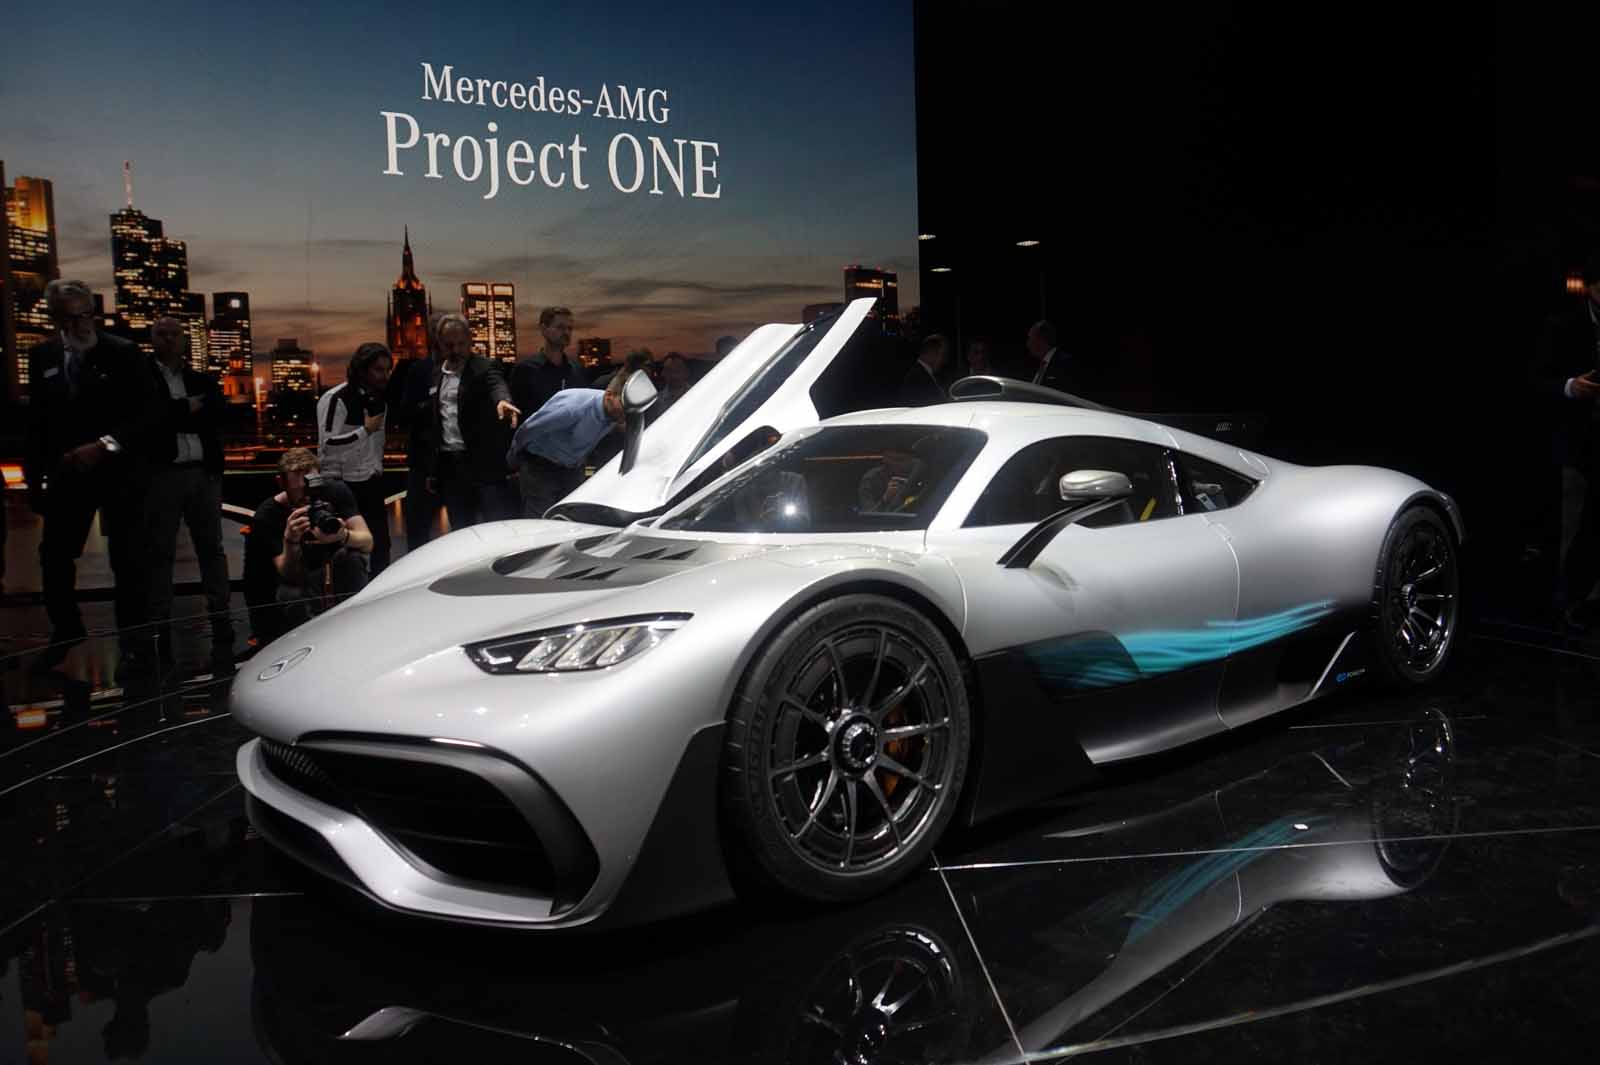 mercedes amg project one brings formula 1 tech to the road news. Black Bedroom Furniture Sets. Home Design Ideas